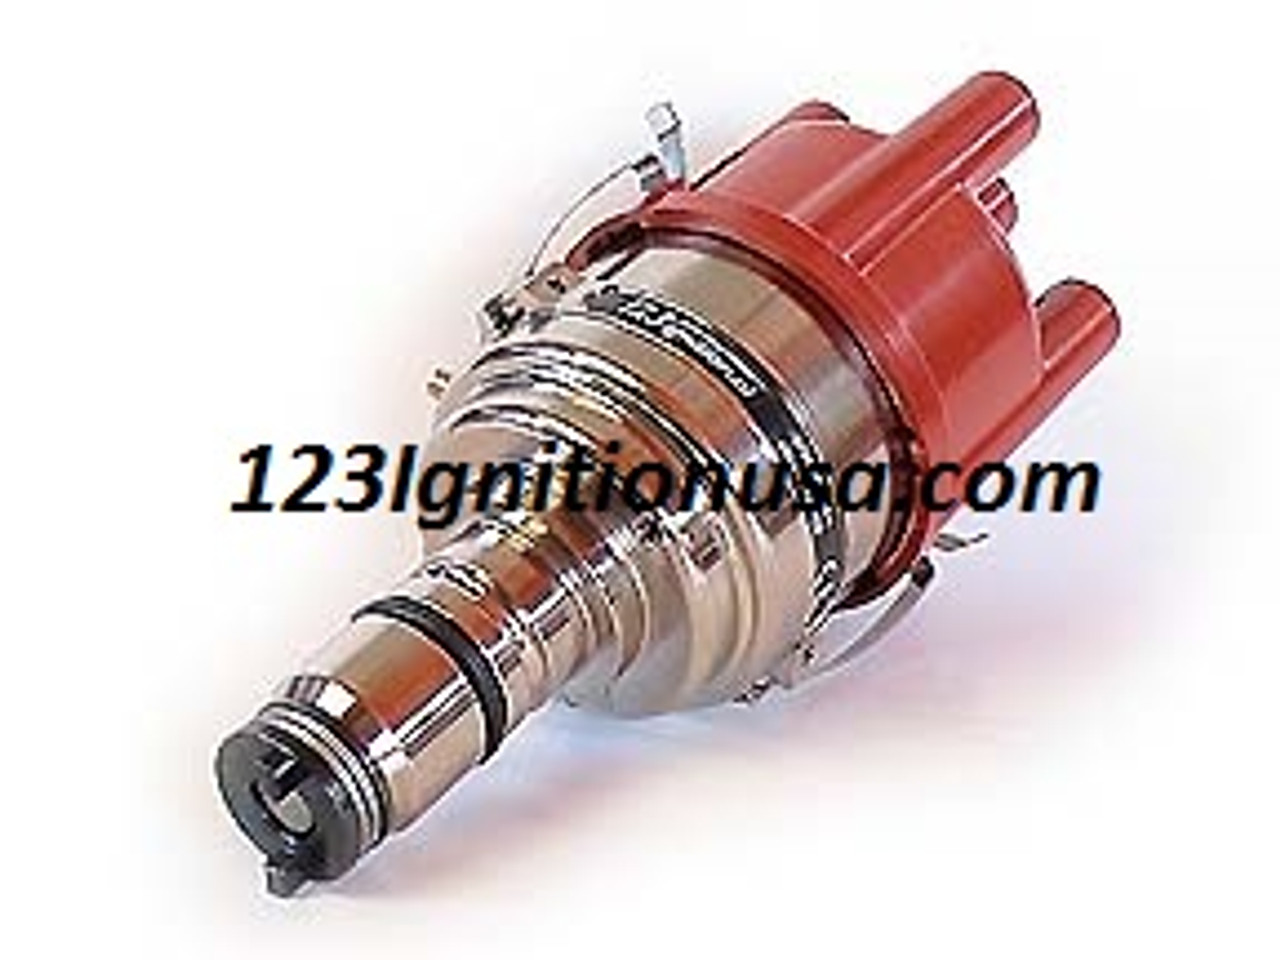 The 123\B16-R-V is designed for the Volvo B4, B14 and B16 engines, not only for classic cars but also for boats, like the well known Volvo Penta.   The 123\B16-R-V replaces the original Bosch-distributor and offers advance-curves for the B4B, B14A, B16A and B16B engines.   The unit offers optimised LPG / Ethanol-curves for these engines as well as tuning curves for tuned engines.